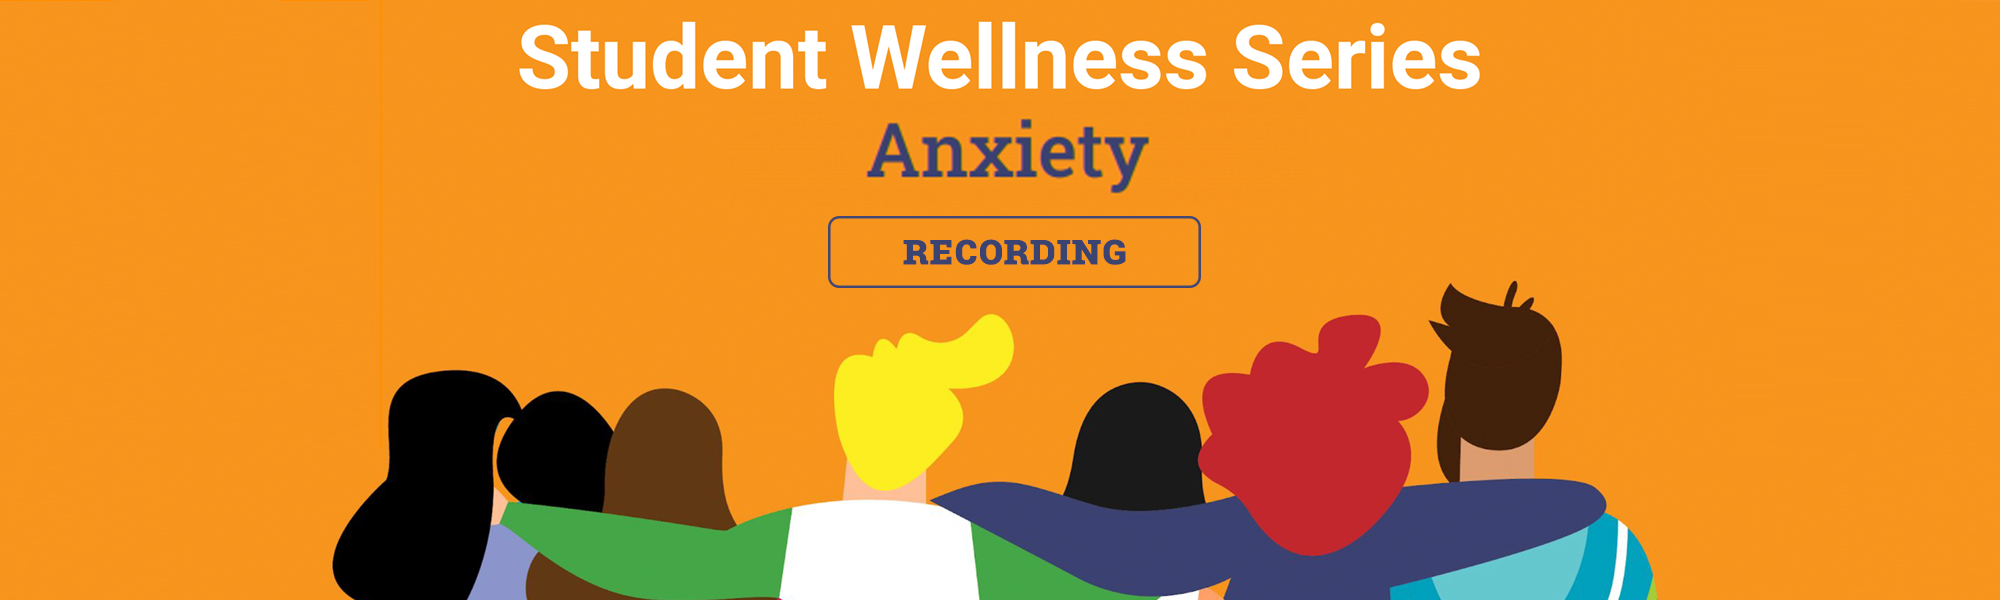 Student Wellness - Anxiety